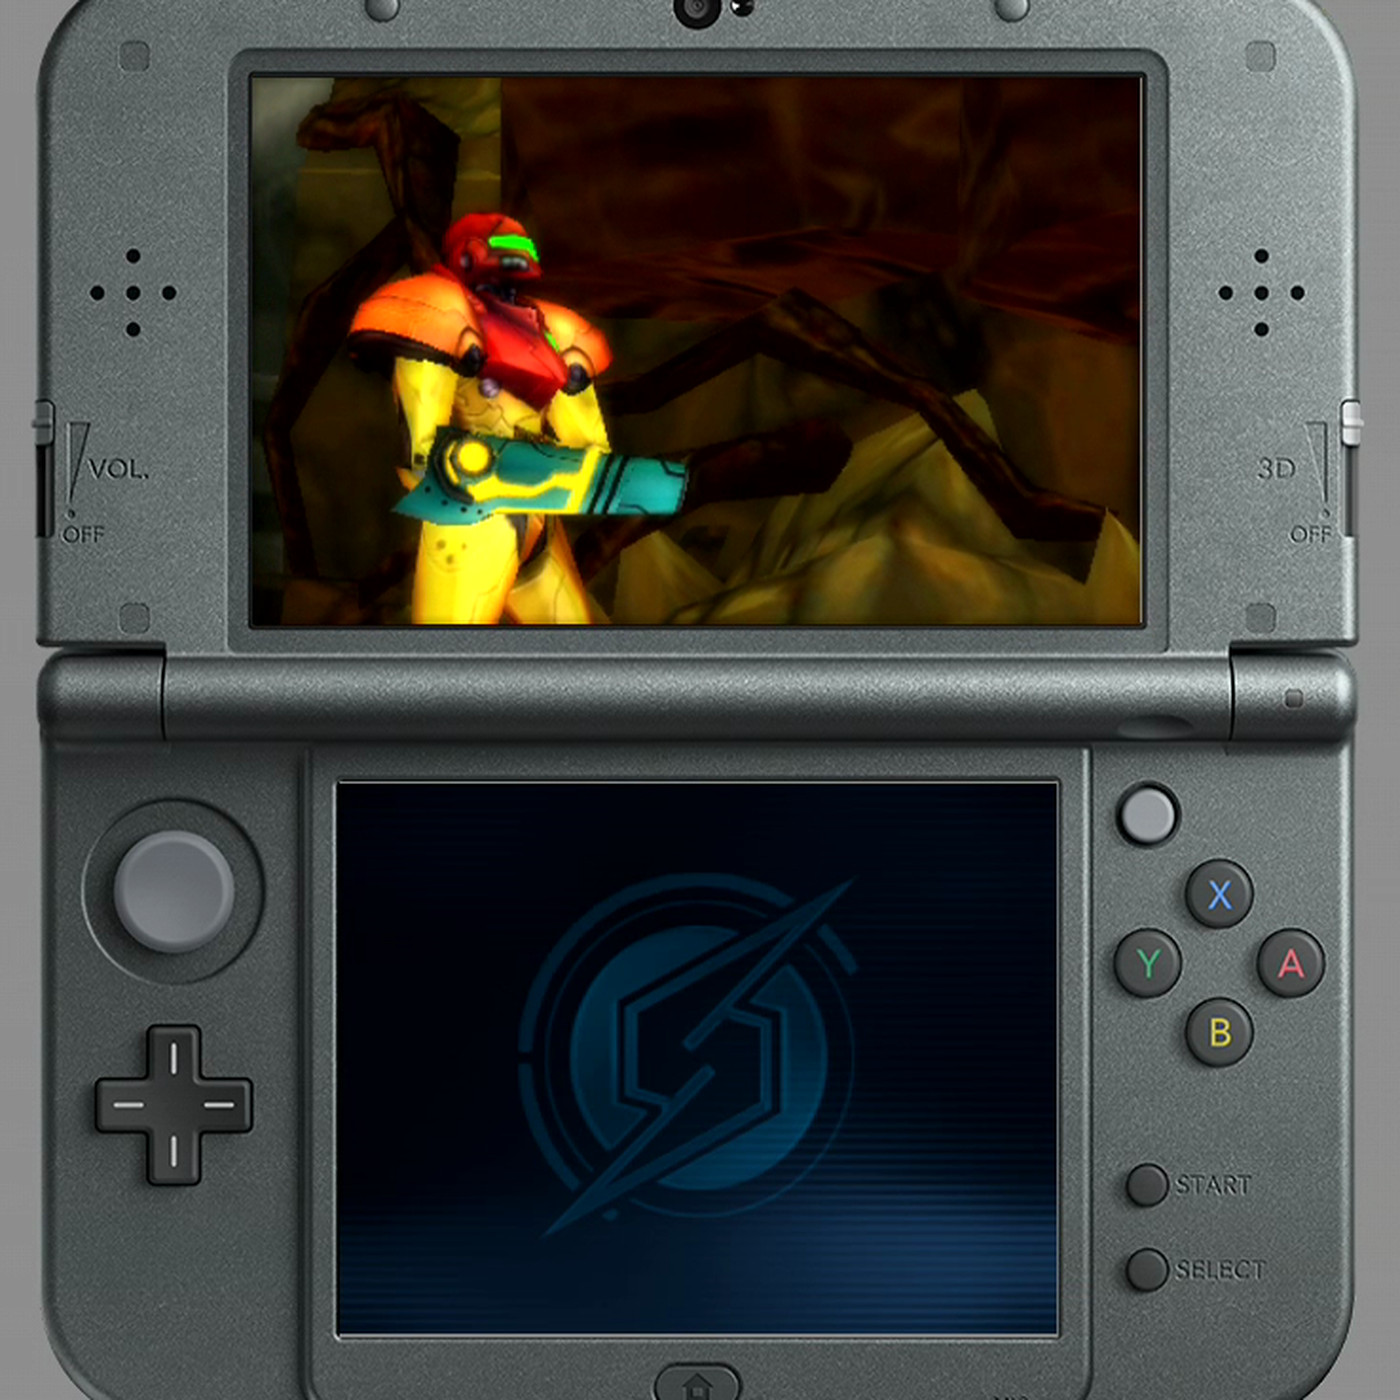 Metroid Samus Returns Introduces Free Aim Melee Counter And More 3ds Special Edition Reg Us Abilities Polygon